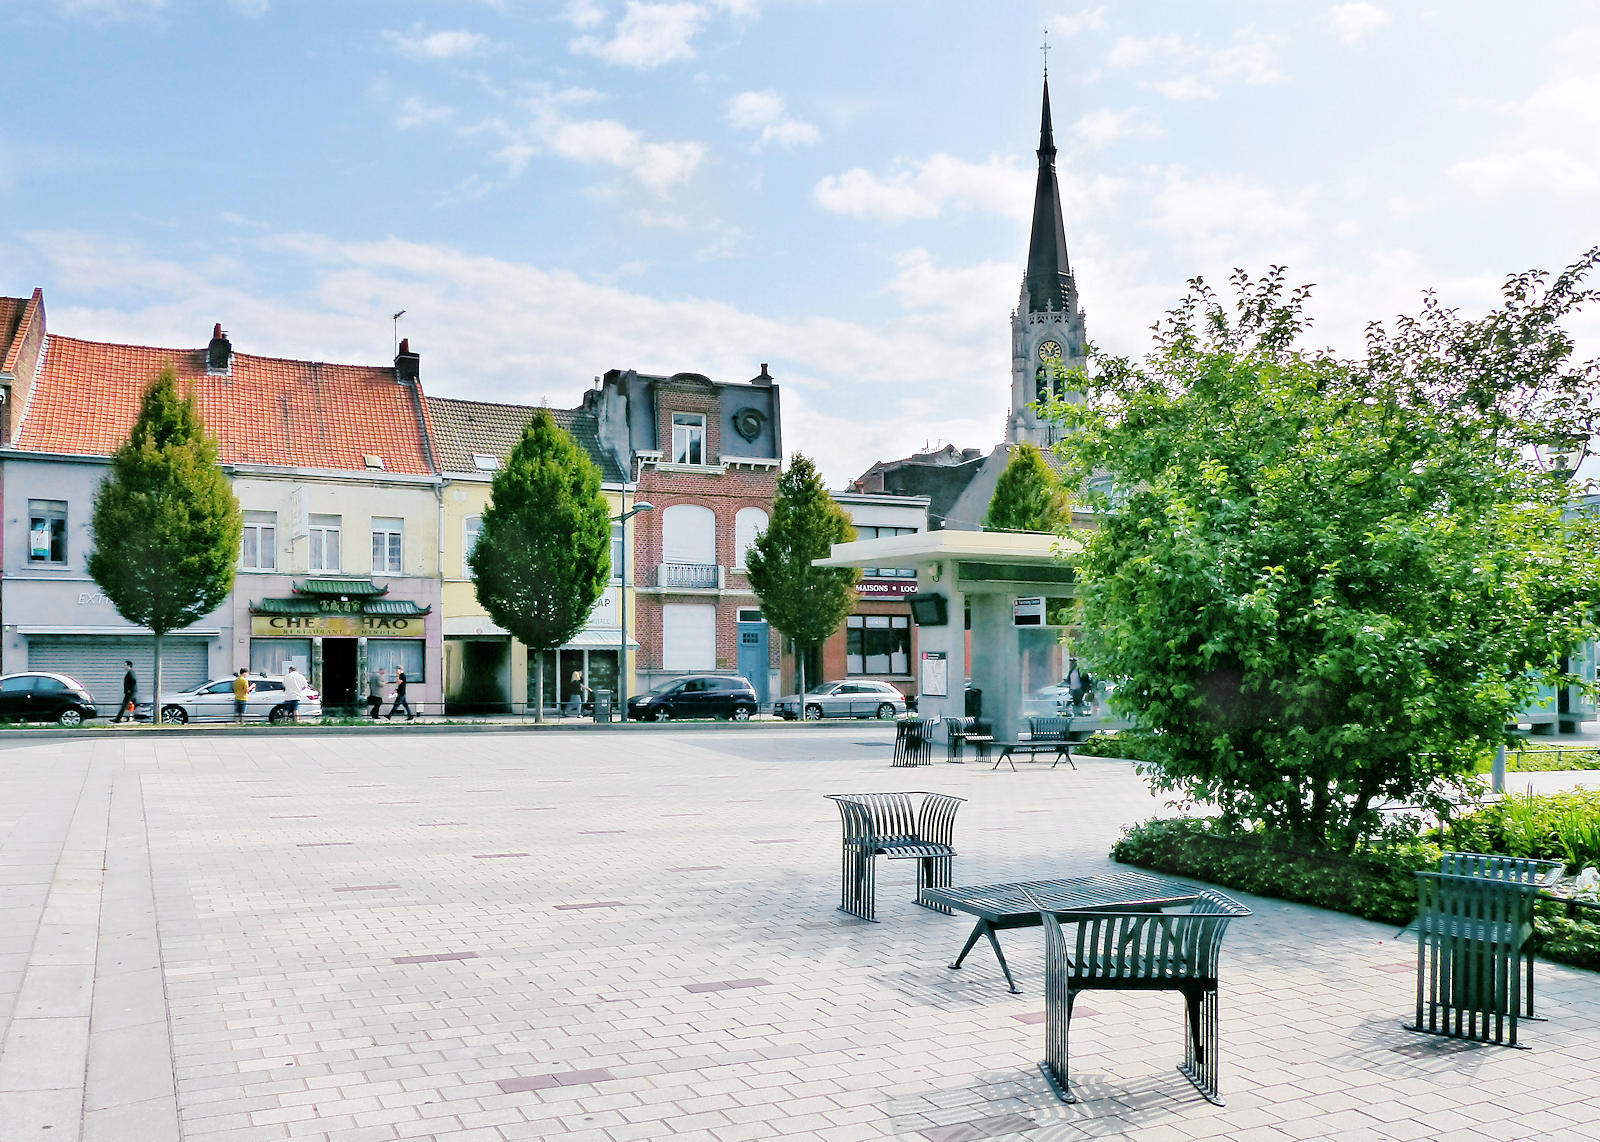 Place Charles et Albert Roussel, Tourcoing - Avocate Decupere-Cornil